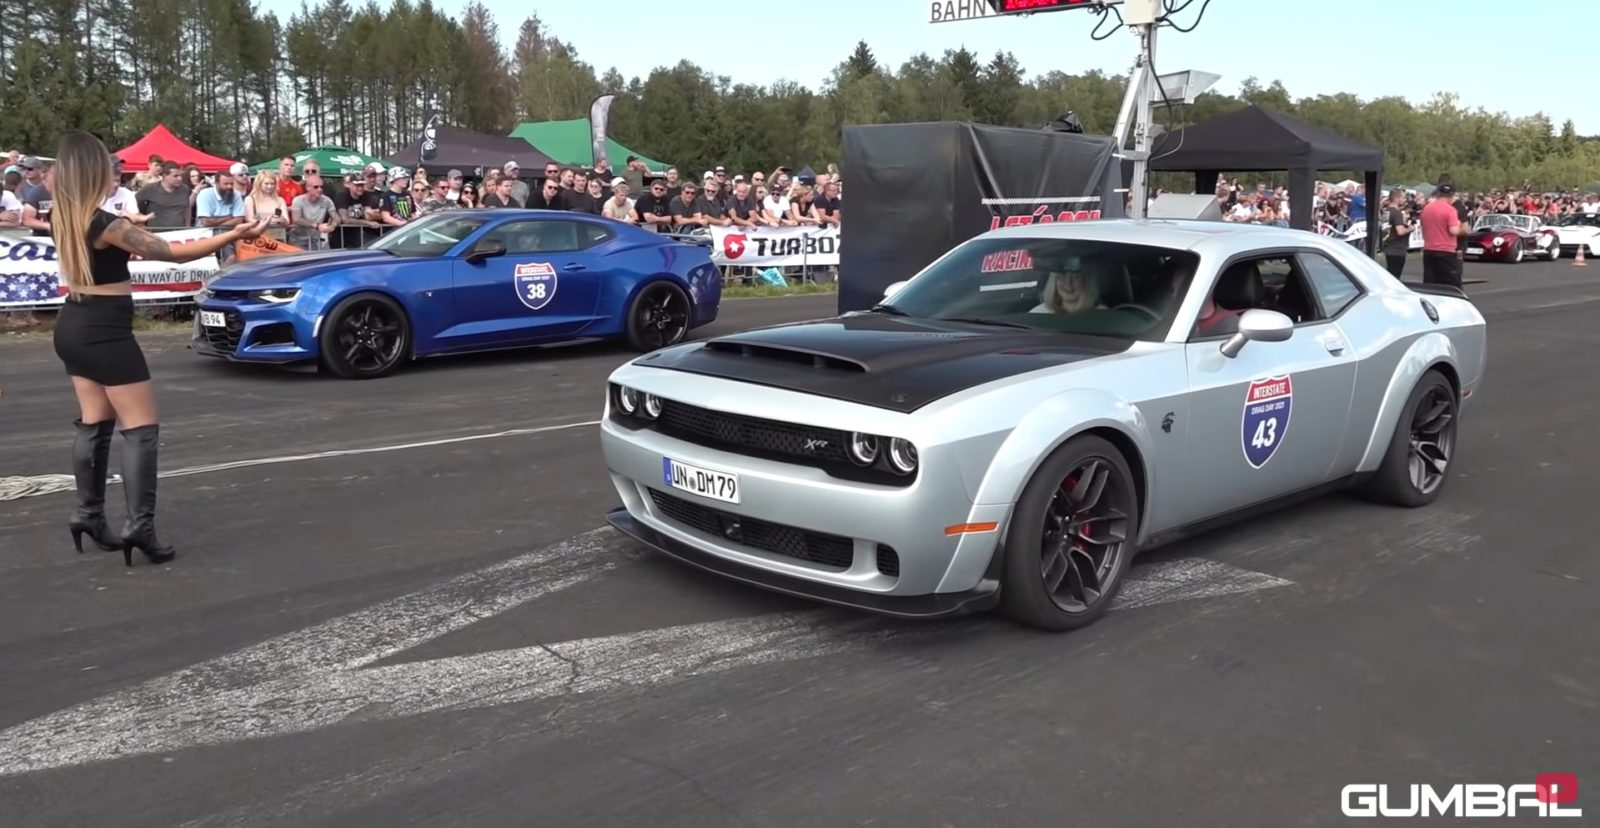 ultra-rare-dodge-challenger-srt-hellcat-xr-drags-mustang-and-camaro-in-adverse-setting